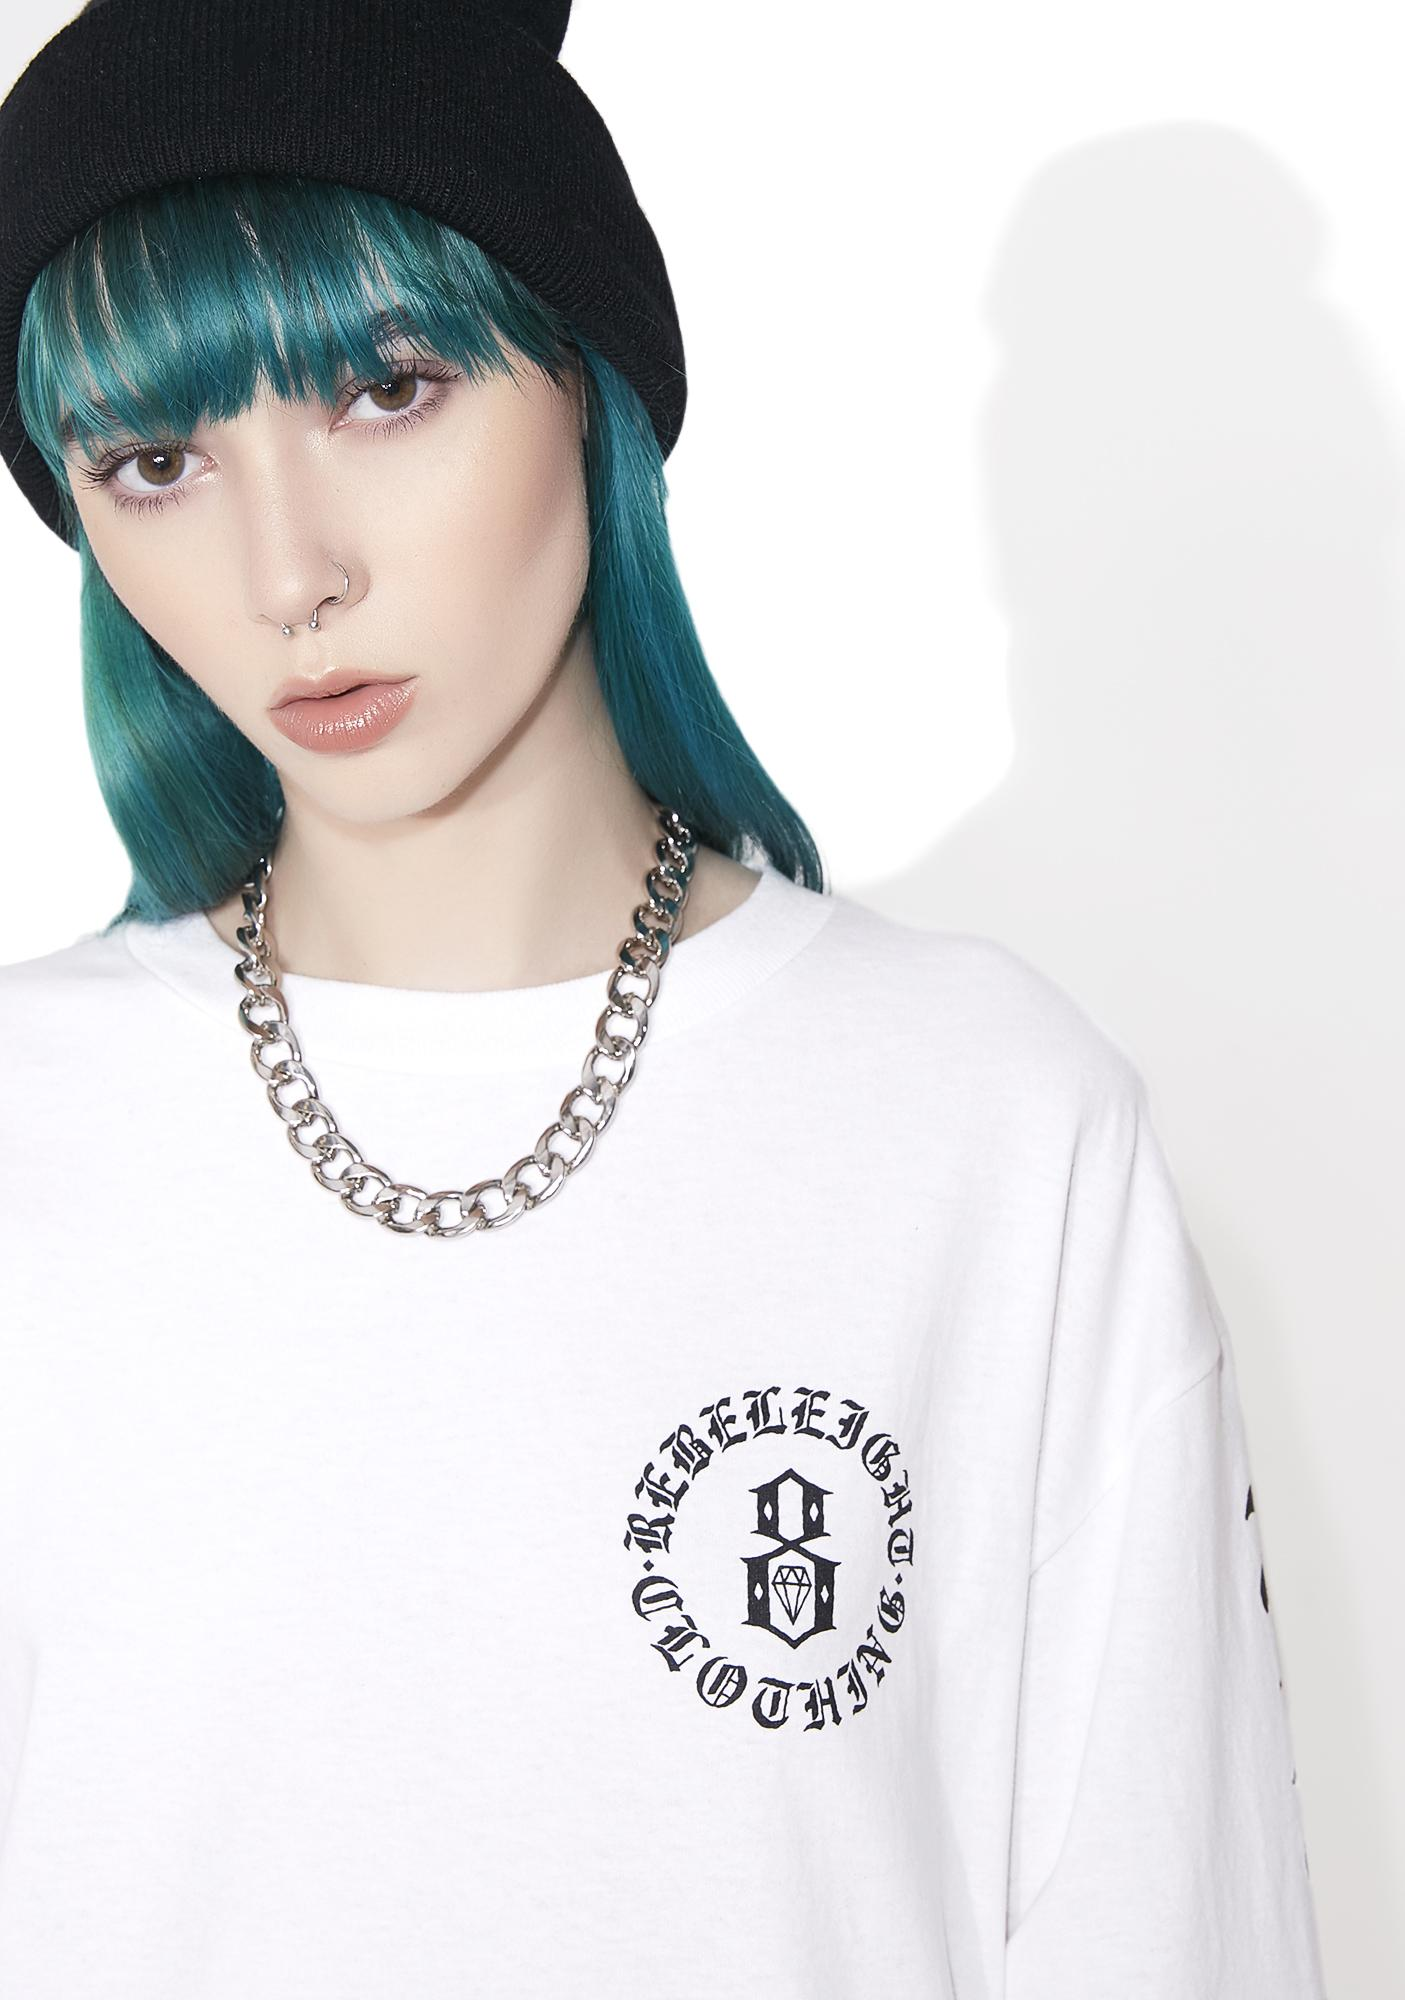 Rebel8 Immortals White Long Sleeve Tee